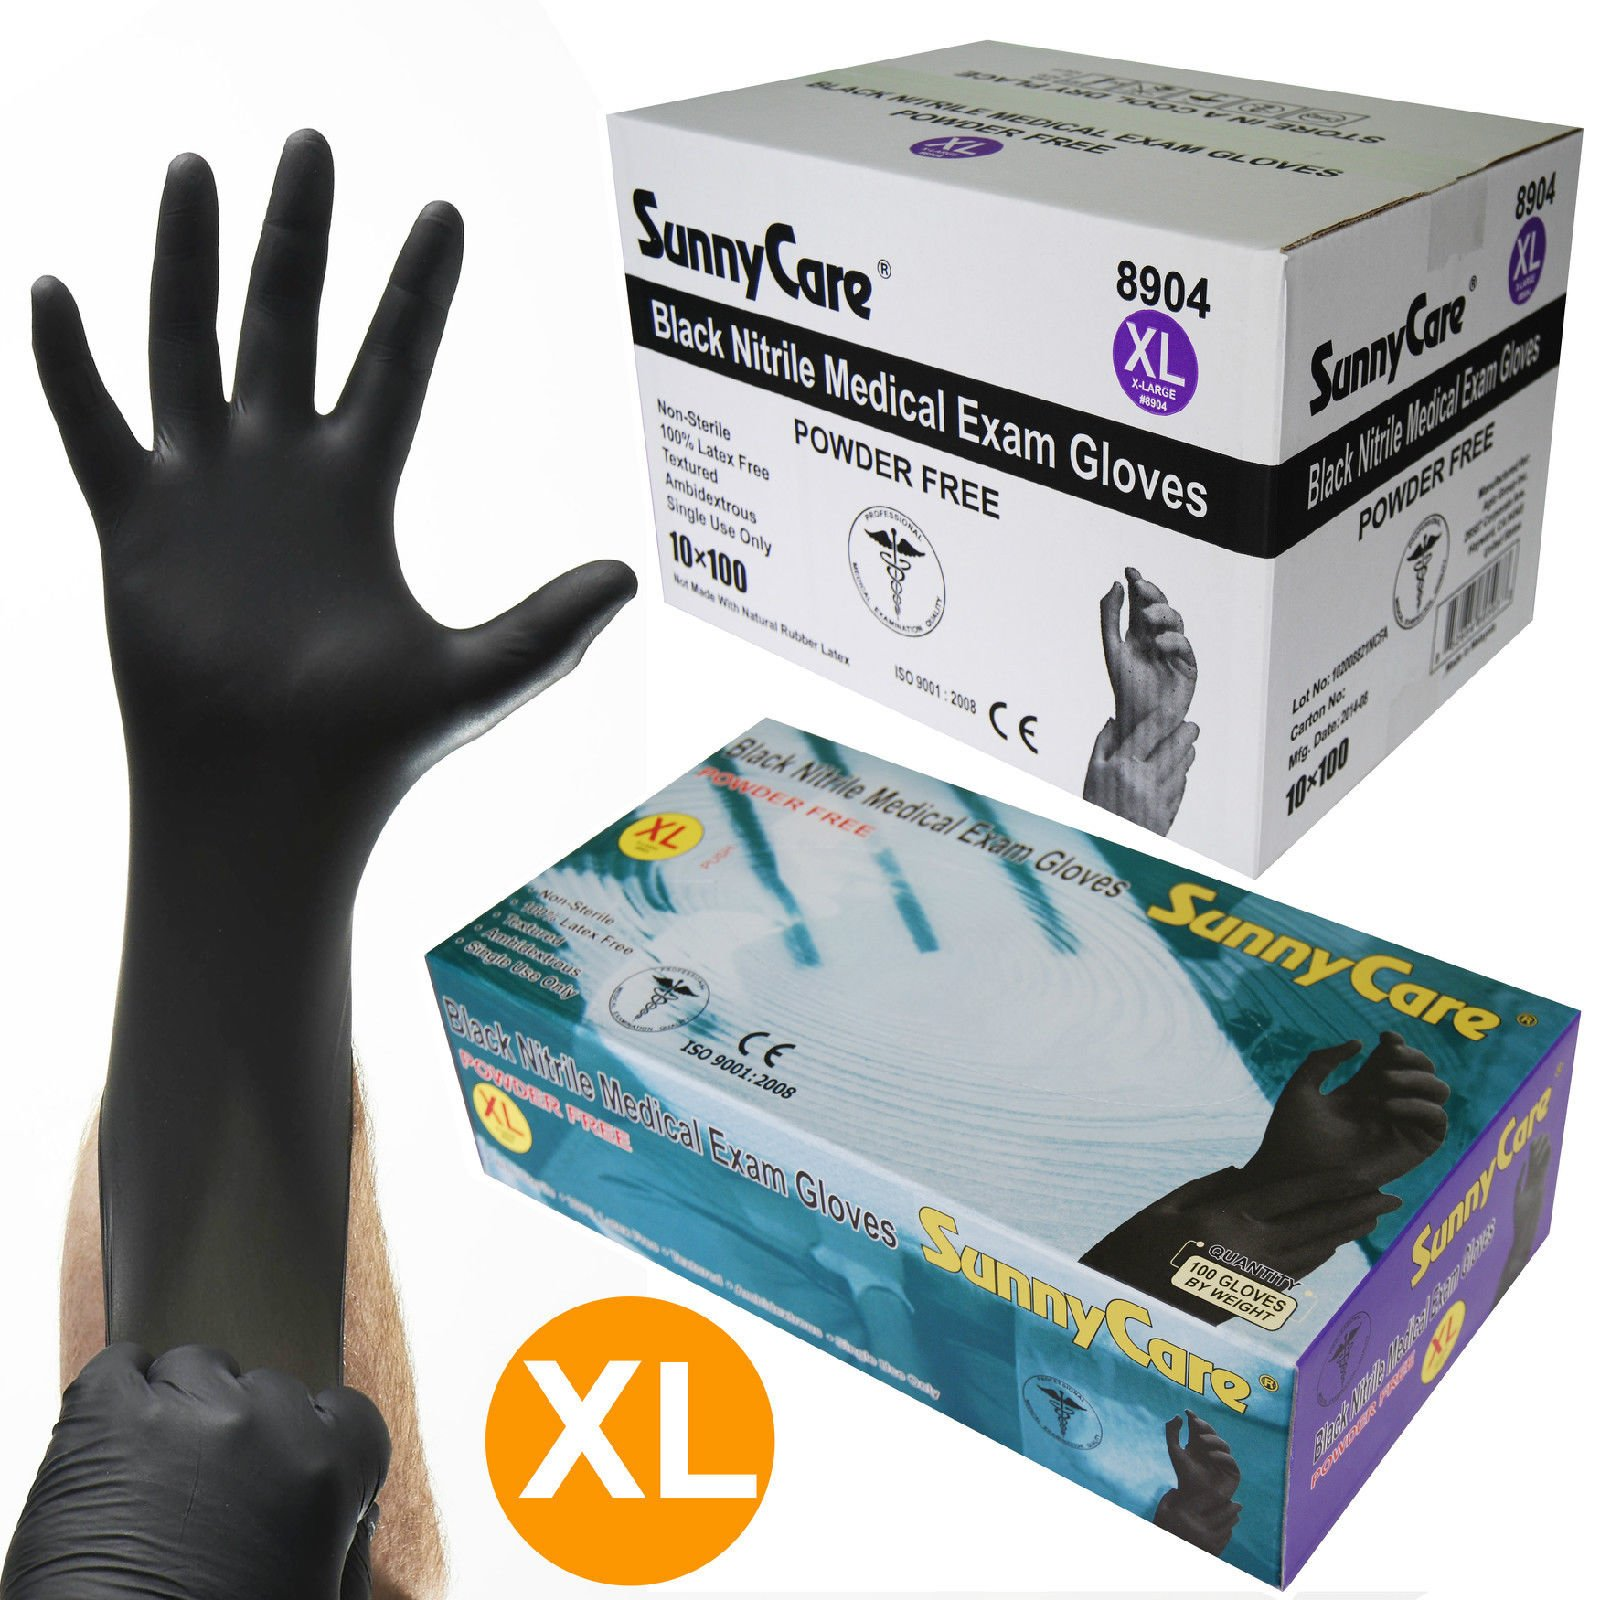 1000/cs 5mil Black Nitrile Medical Exam Gloves Powder Free (Latex Vinyl Free) XL by Gloves